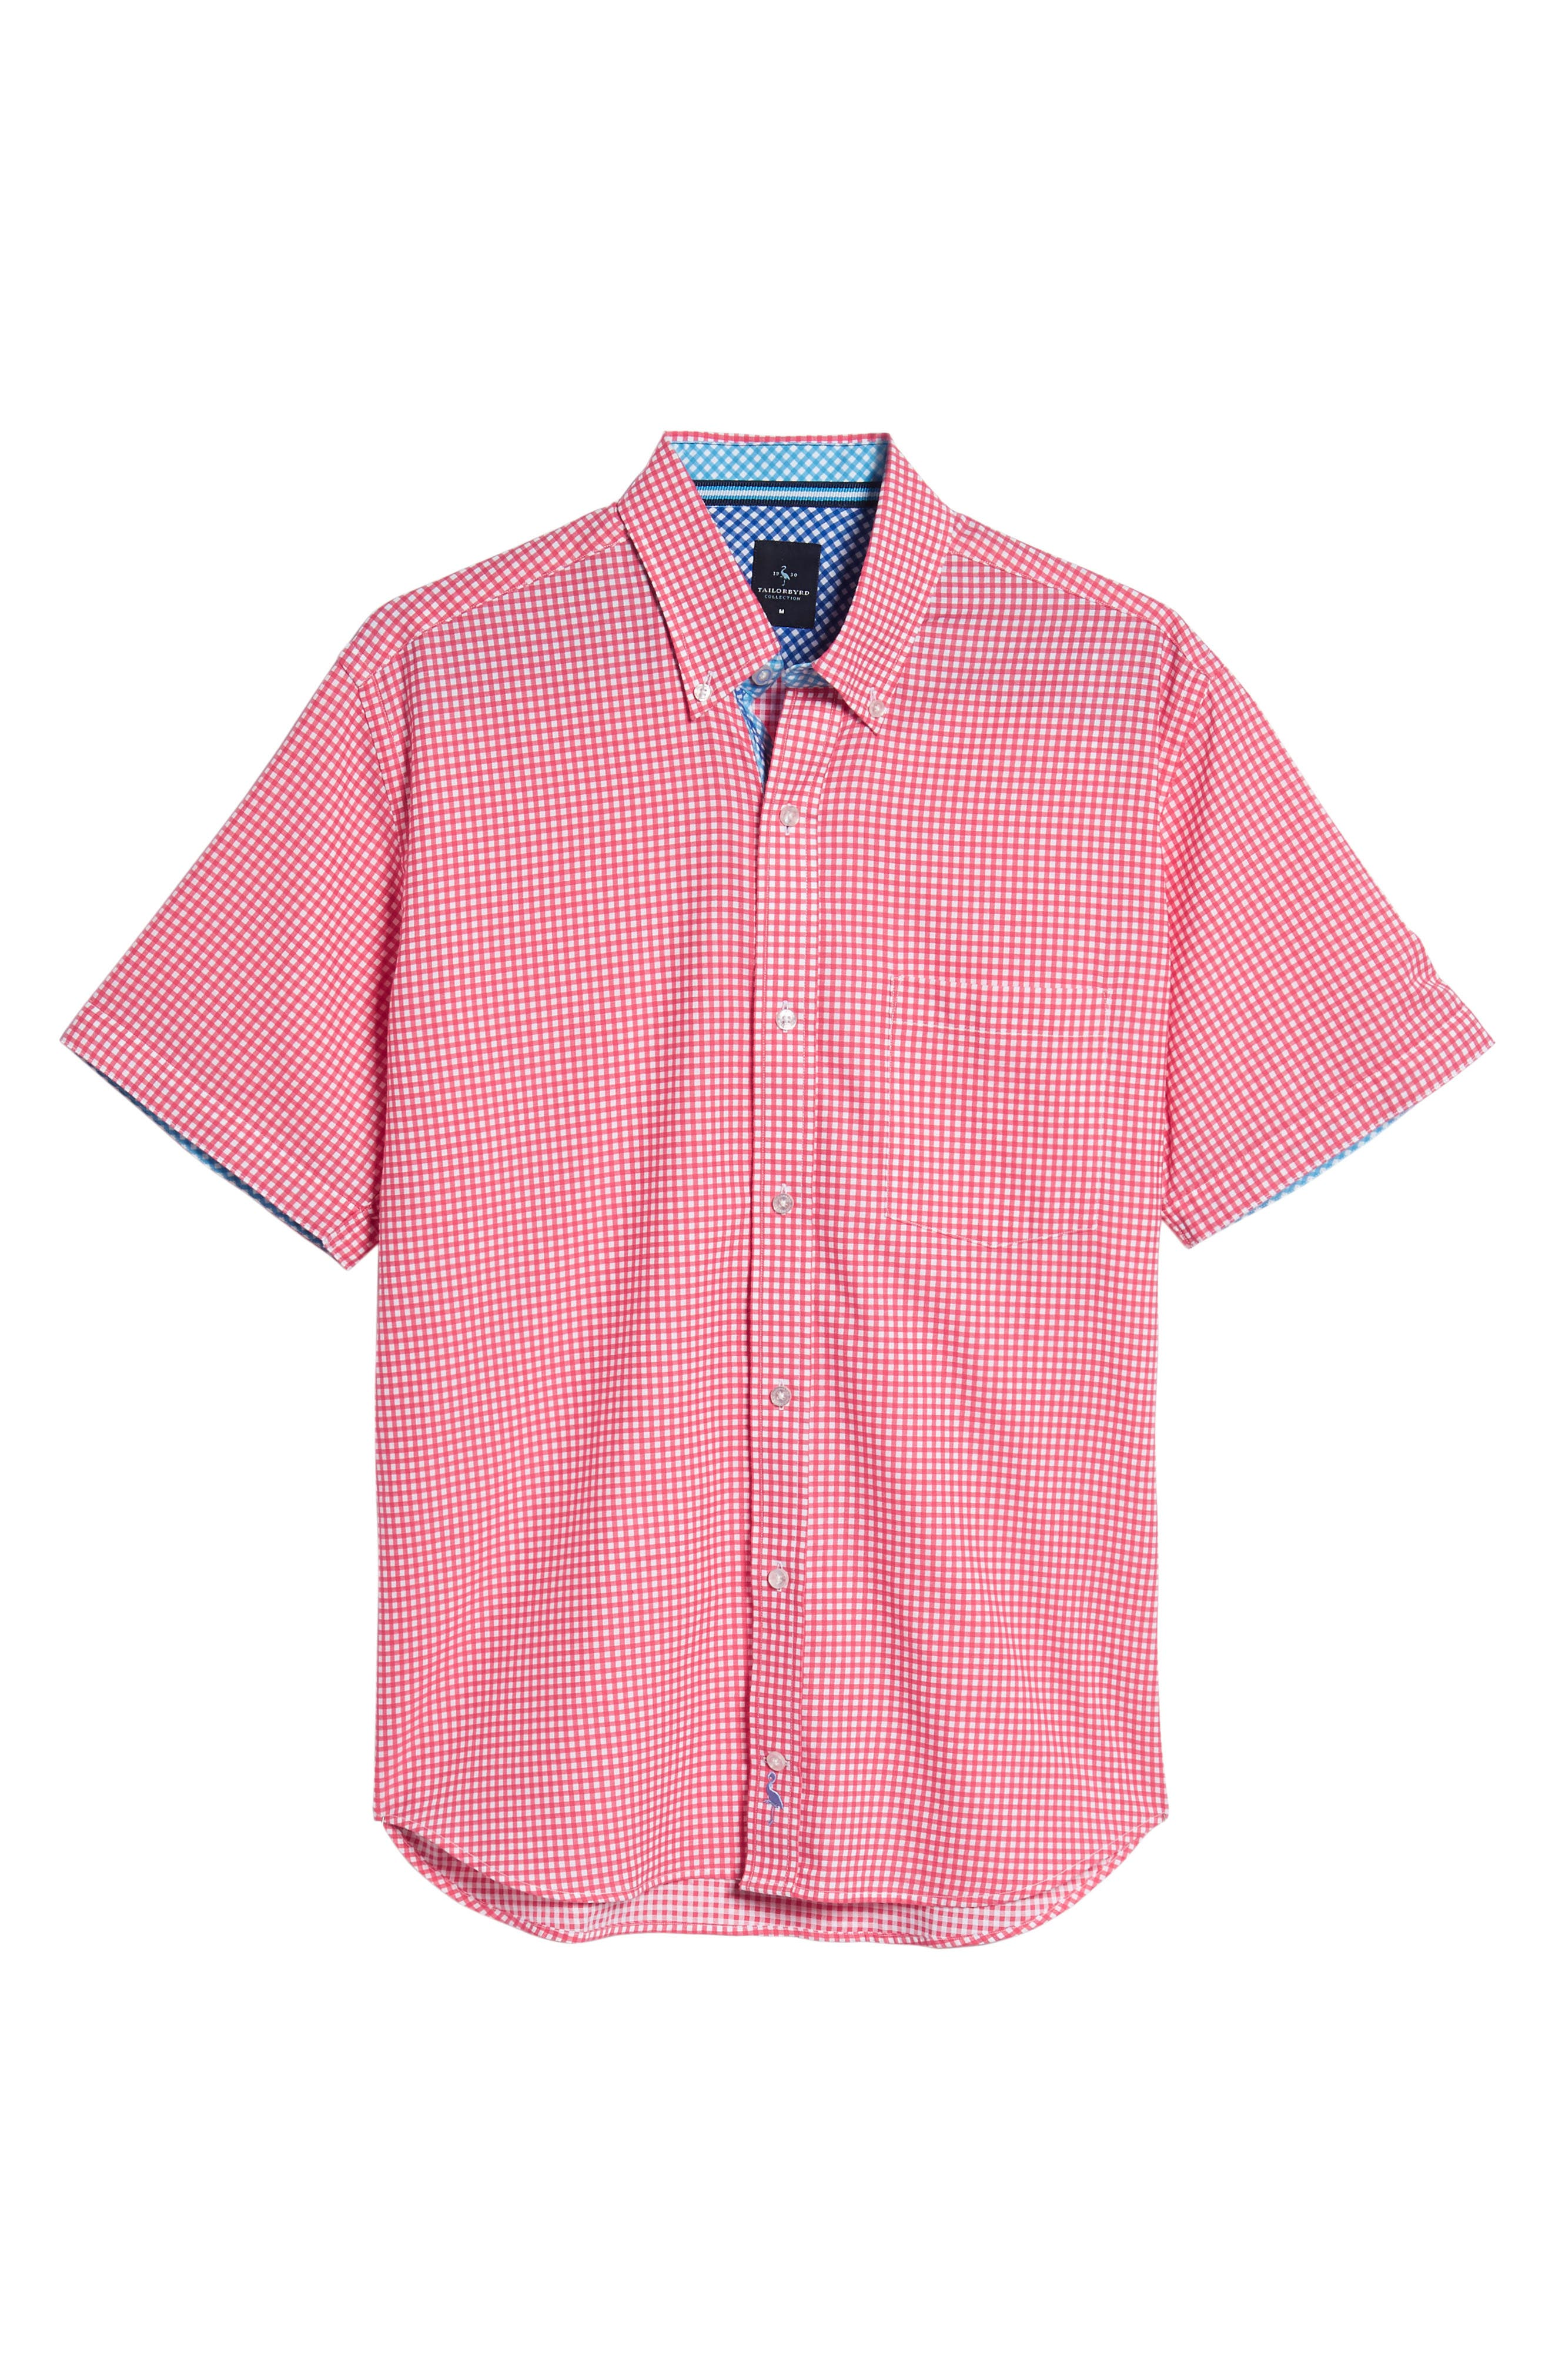 Aden Regular Fit Sport Shirt,                             Alternate thumbnail 6, color,                             950